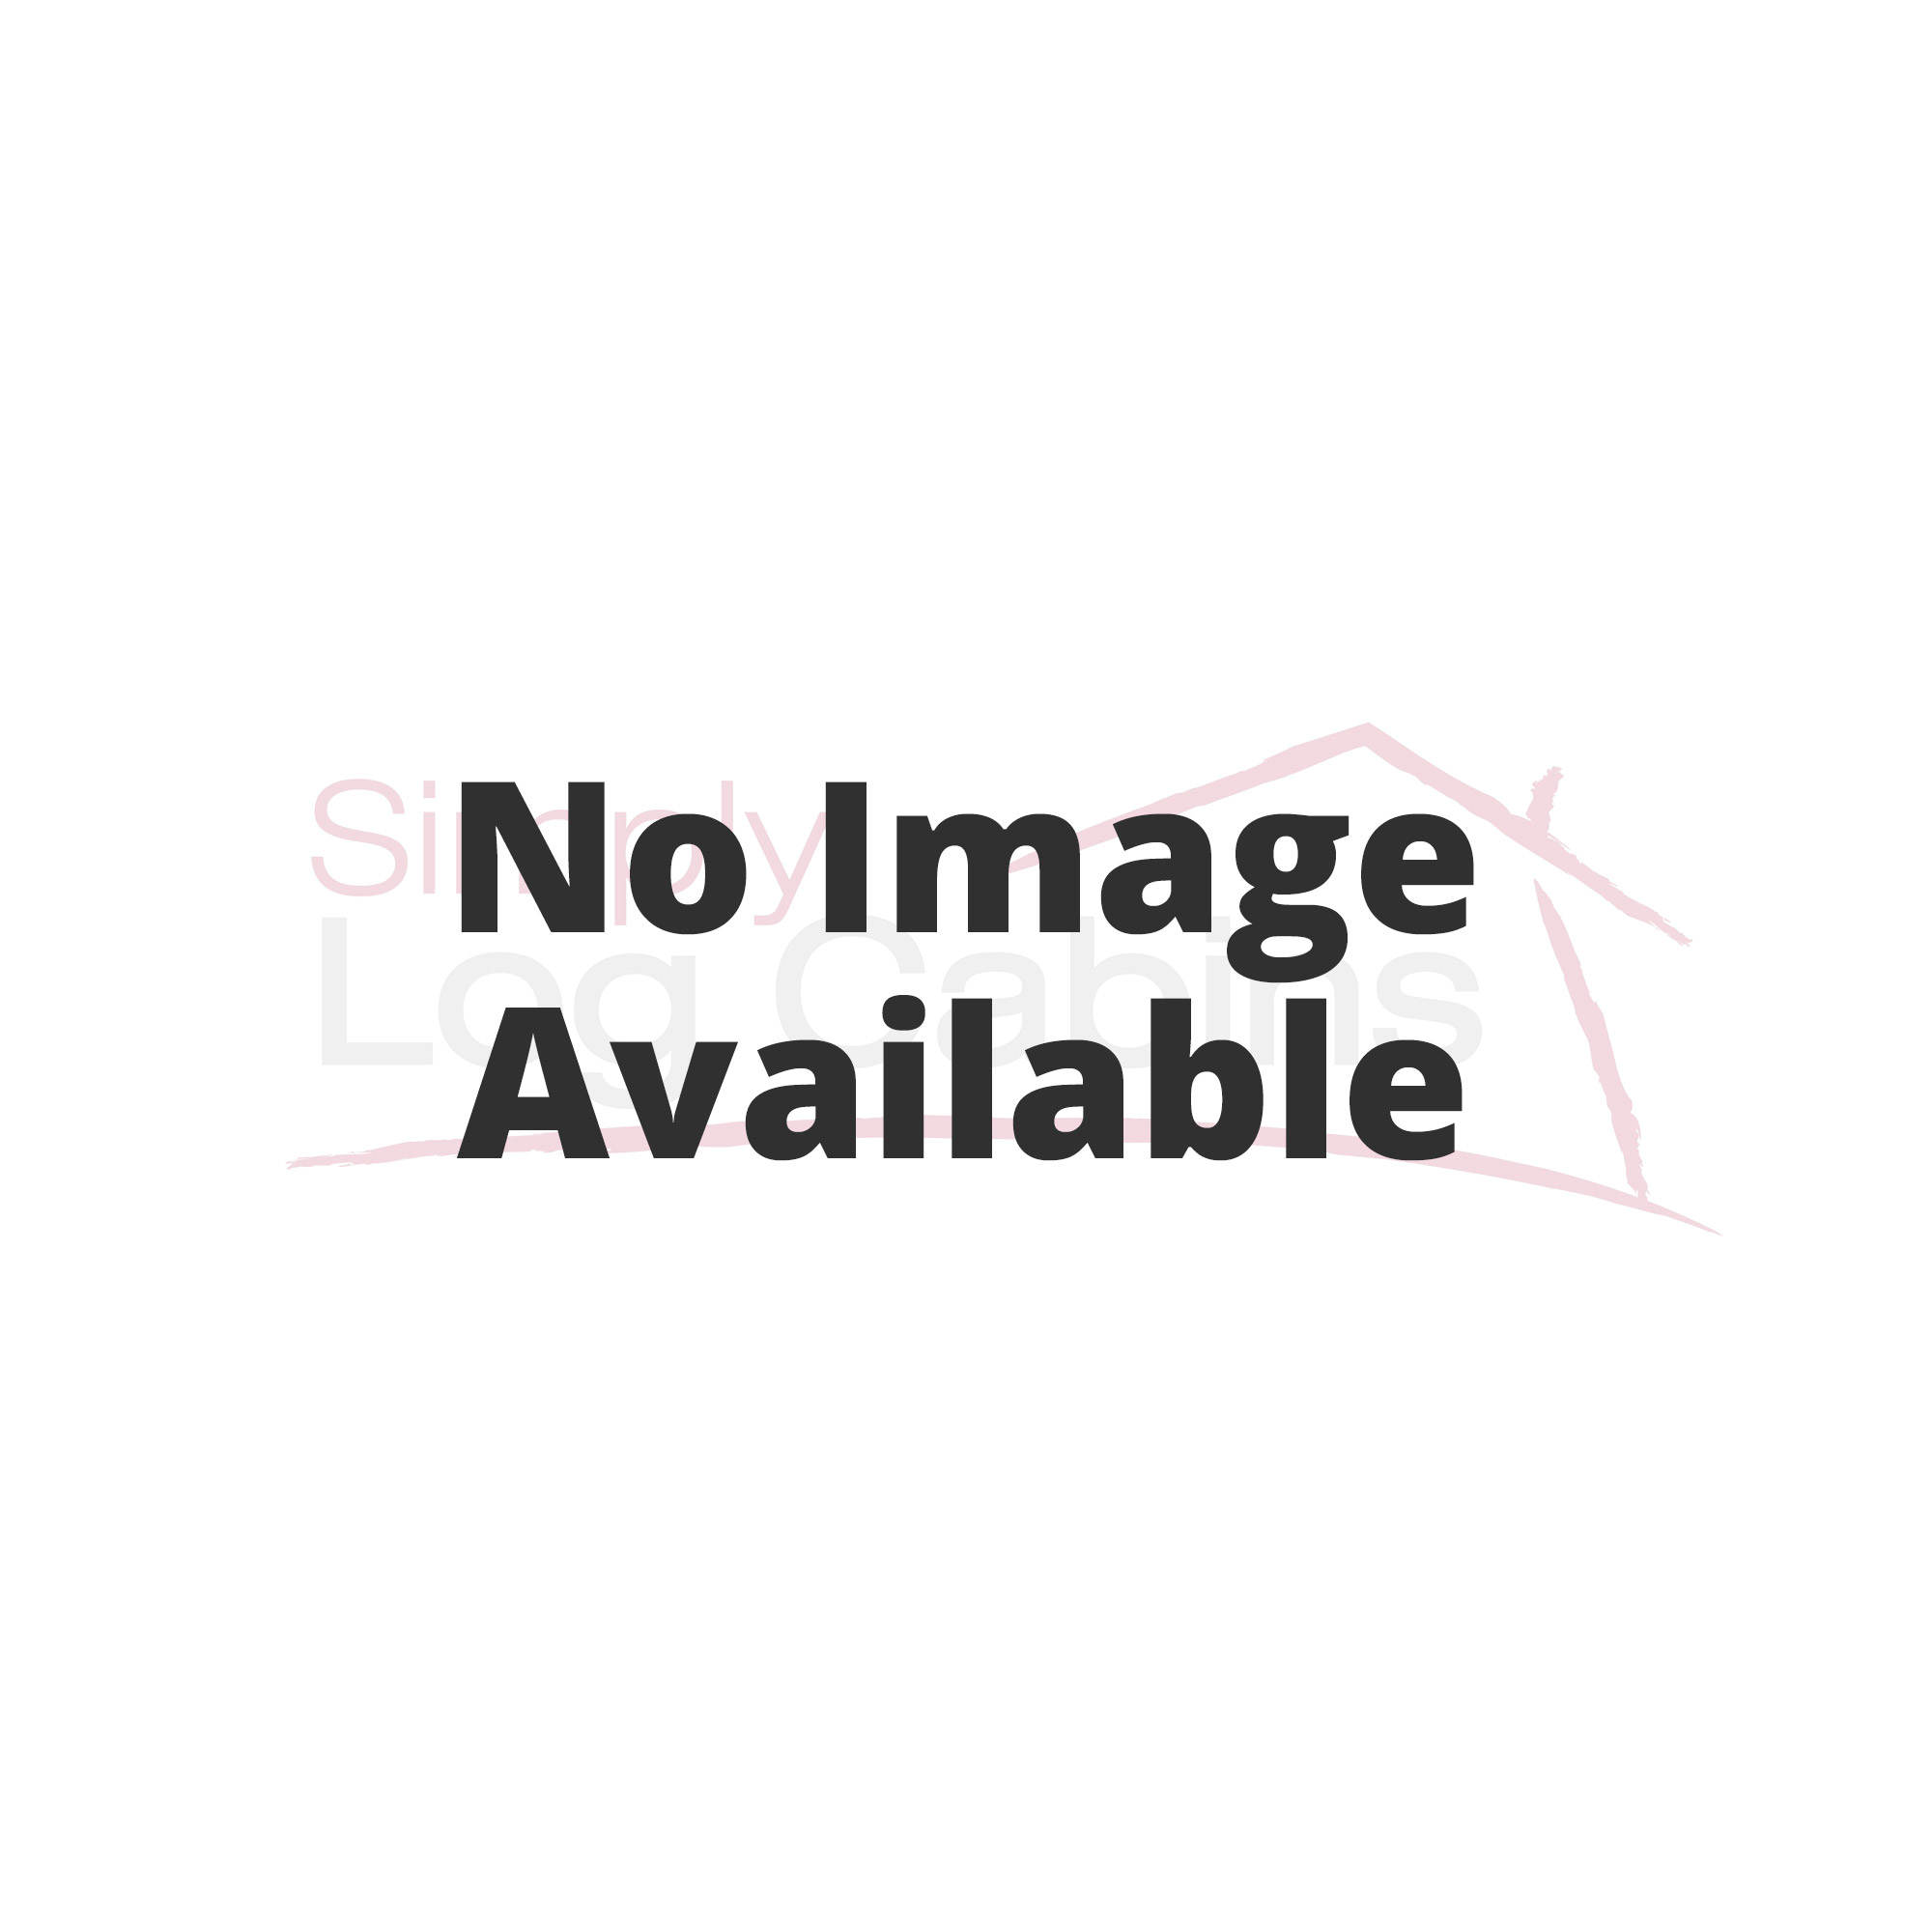 Norland grassington 2 room log cabin for Two room garden shed